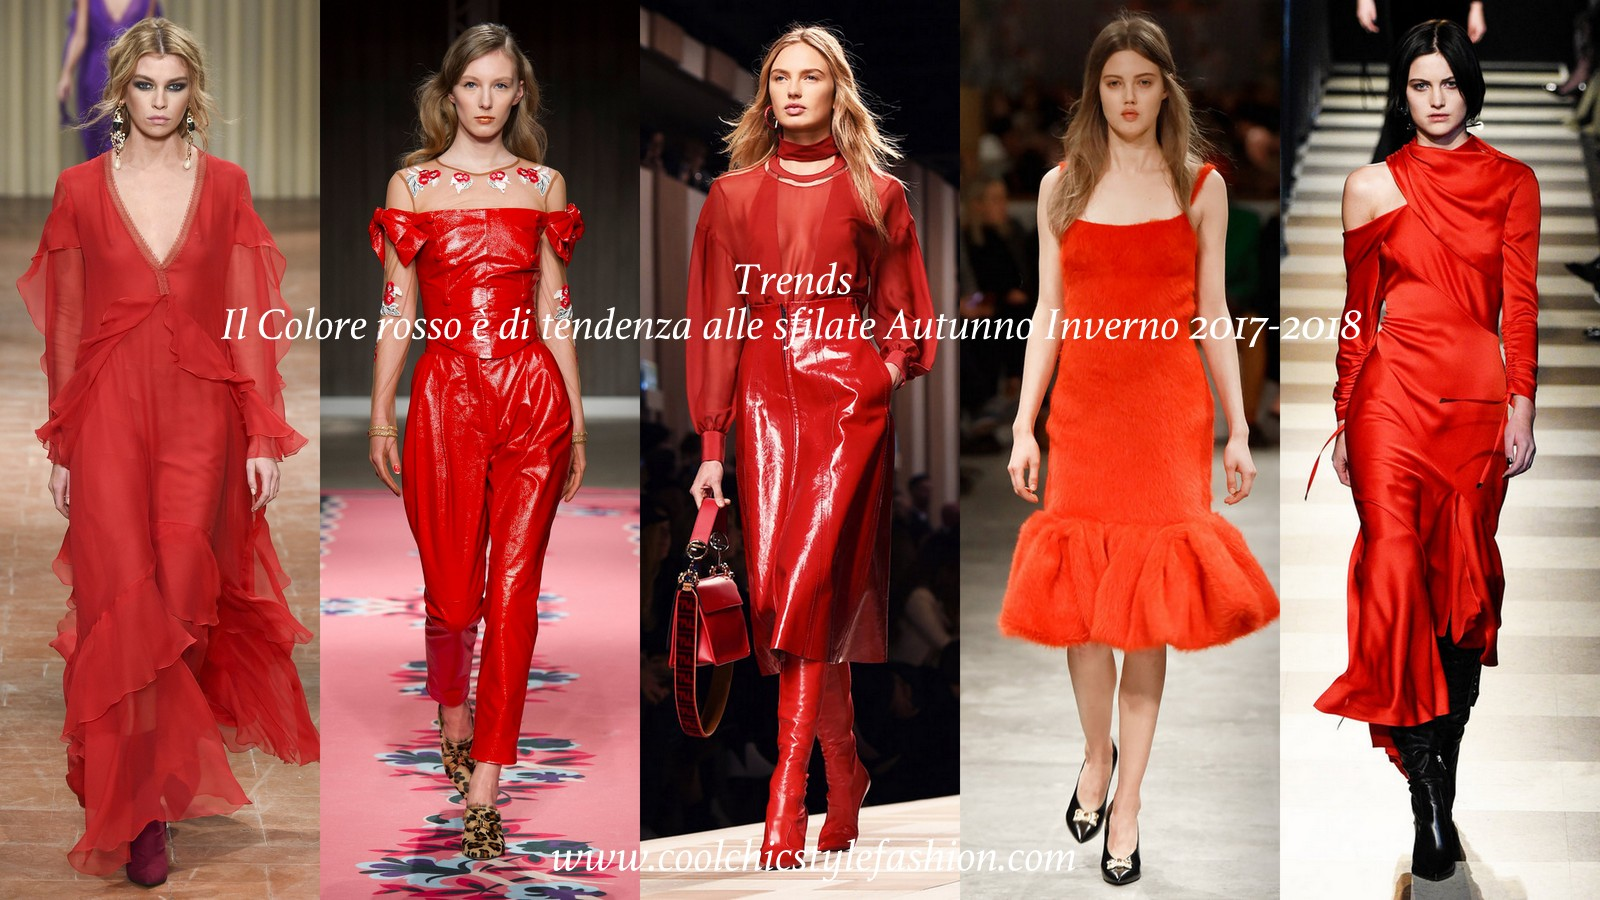 Fashion Inspiration Color Trend Red Fall Winter 2017 2018